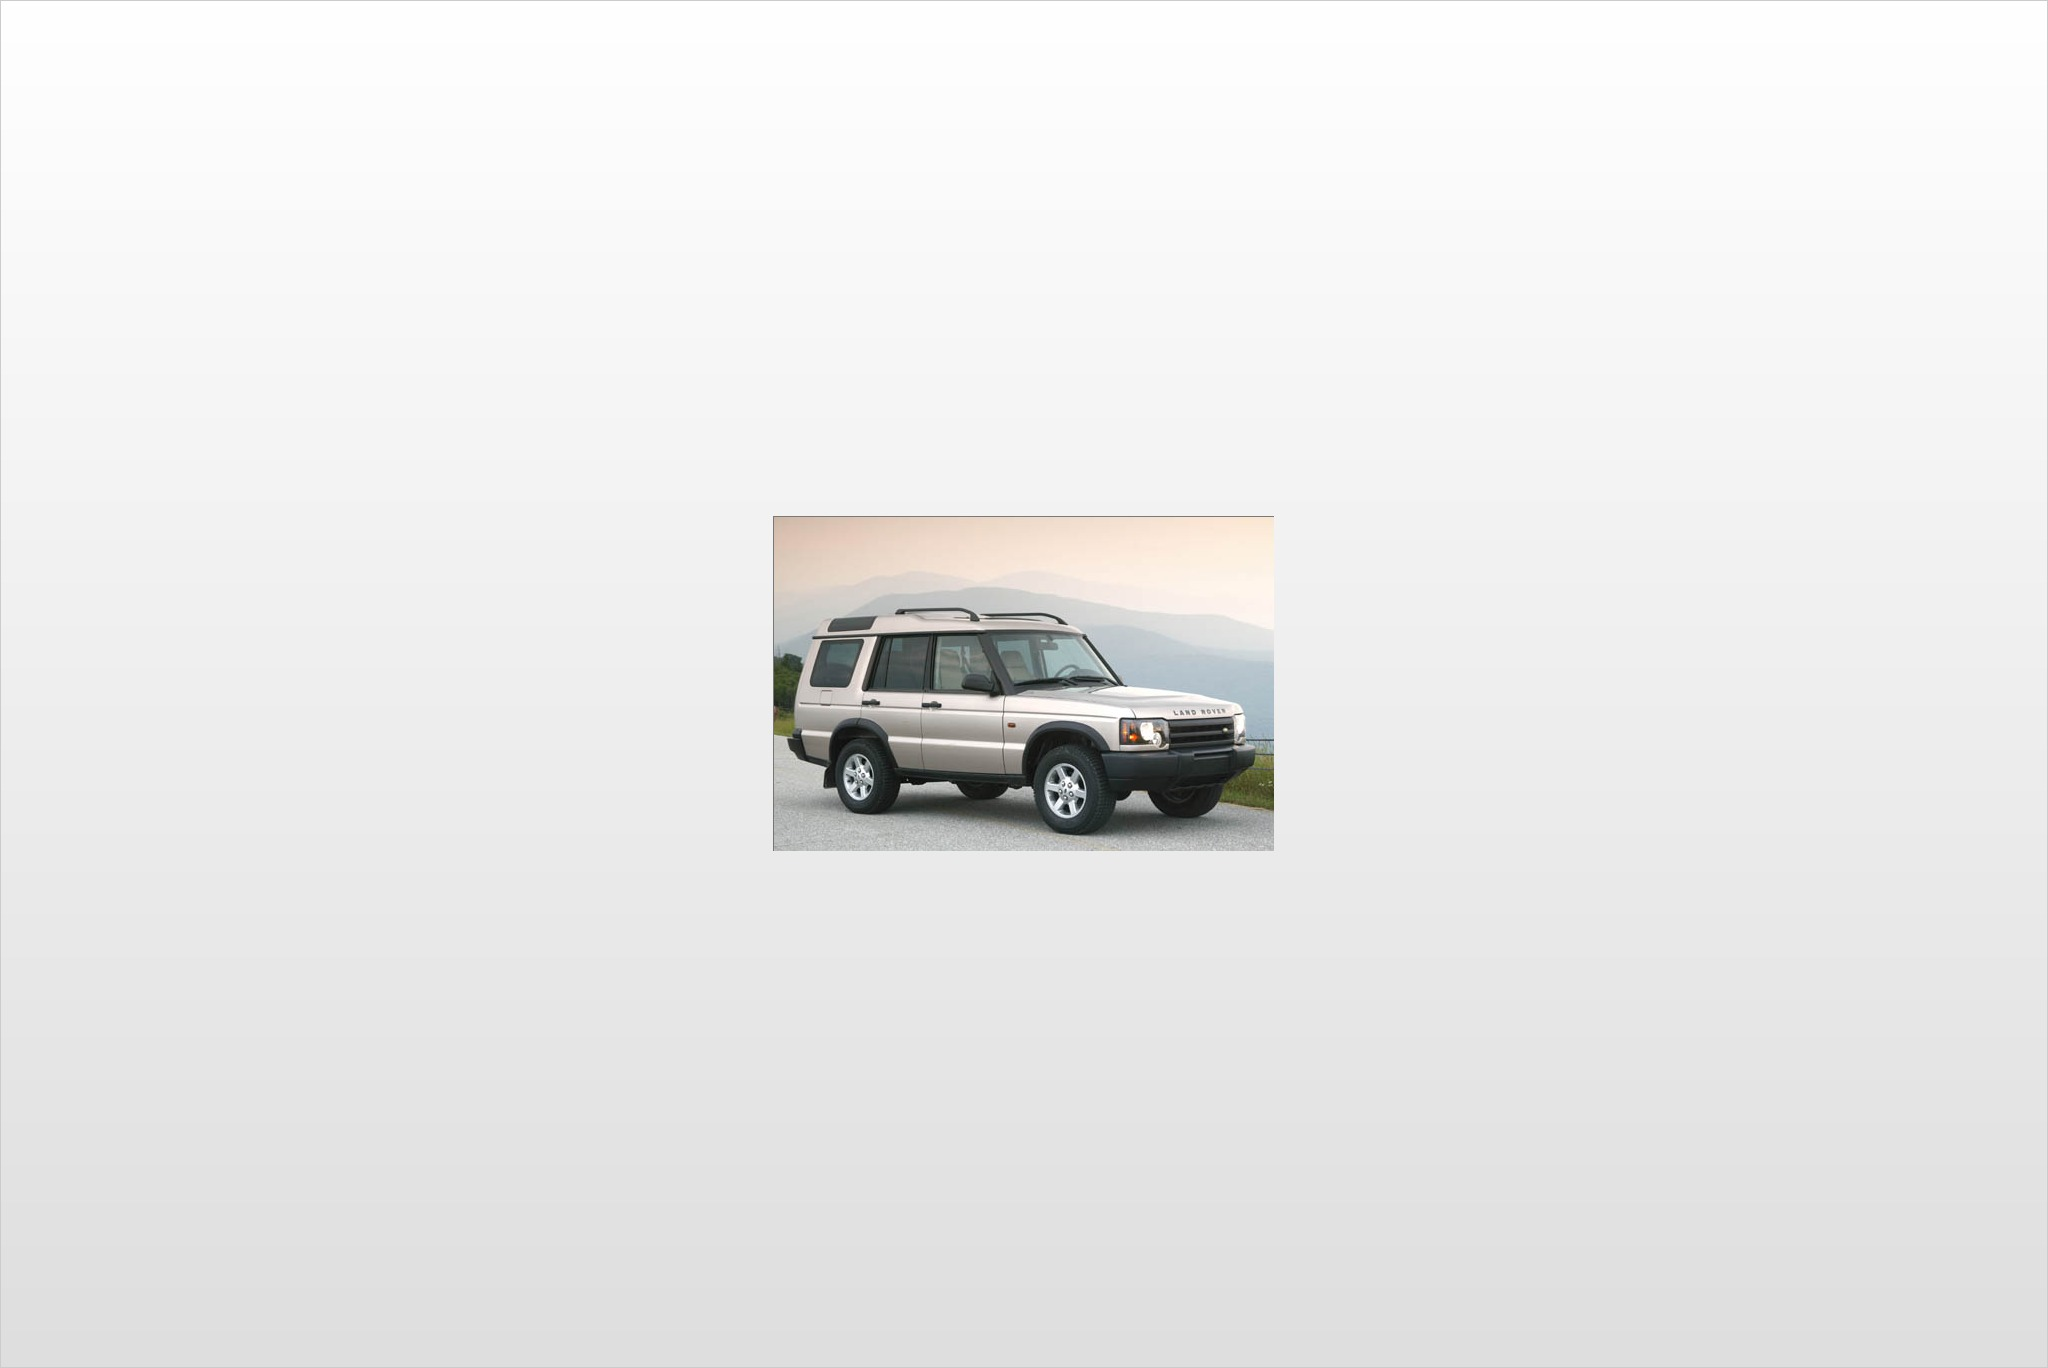 2003 landrover discovery 4dr suv se fq oem 1 2048